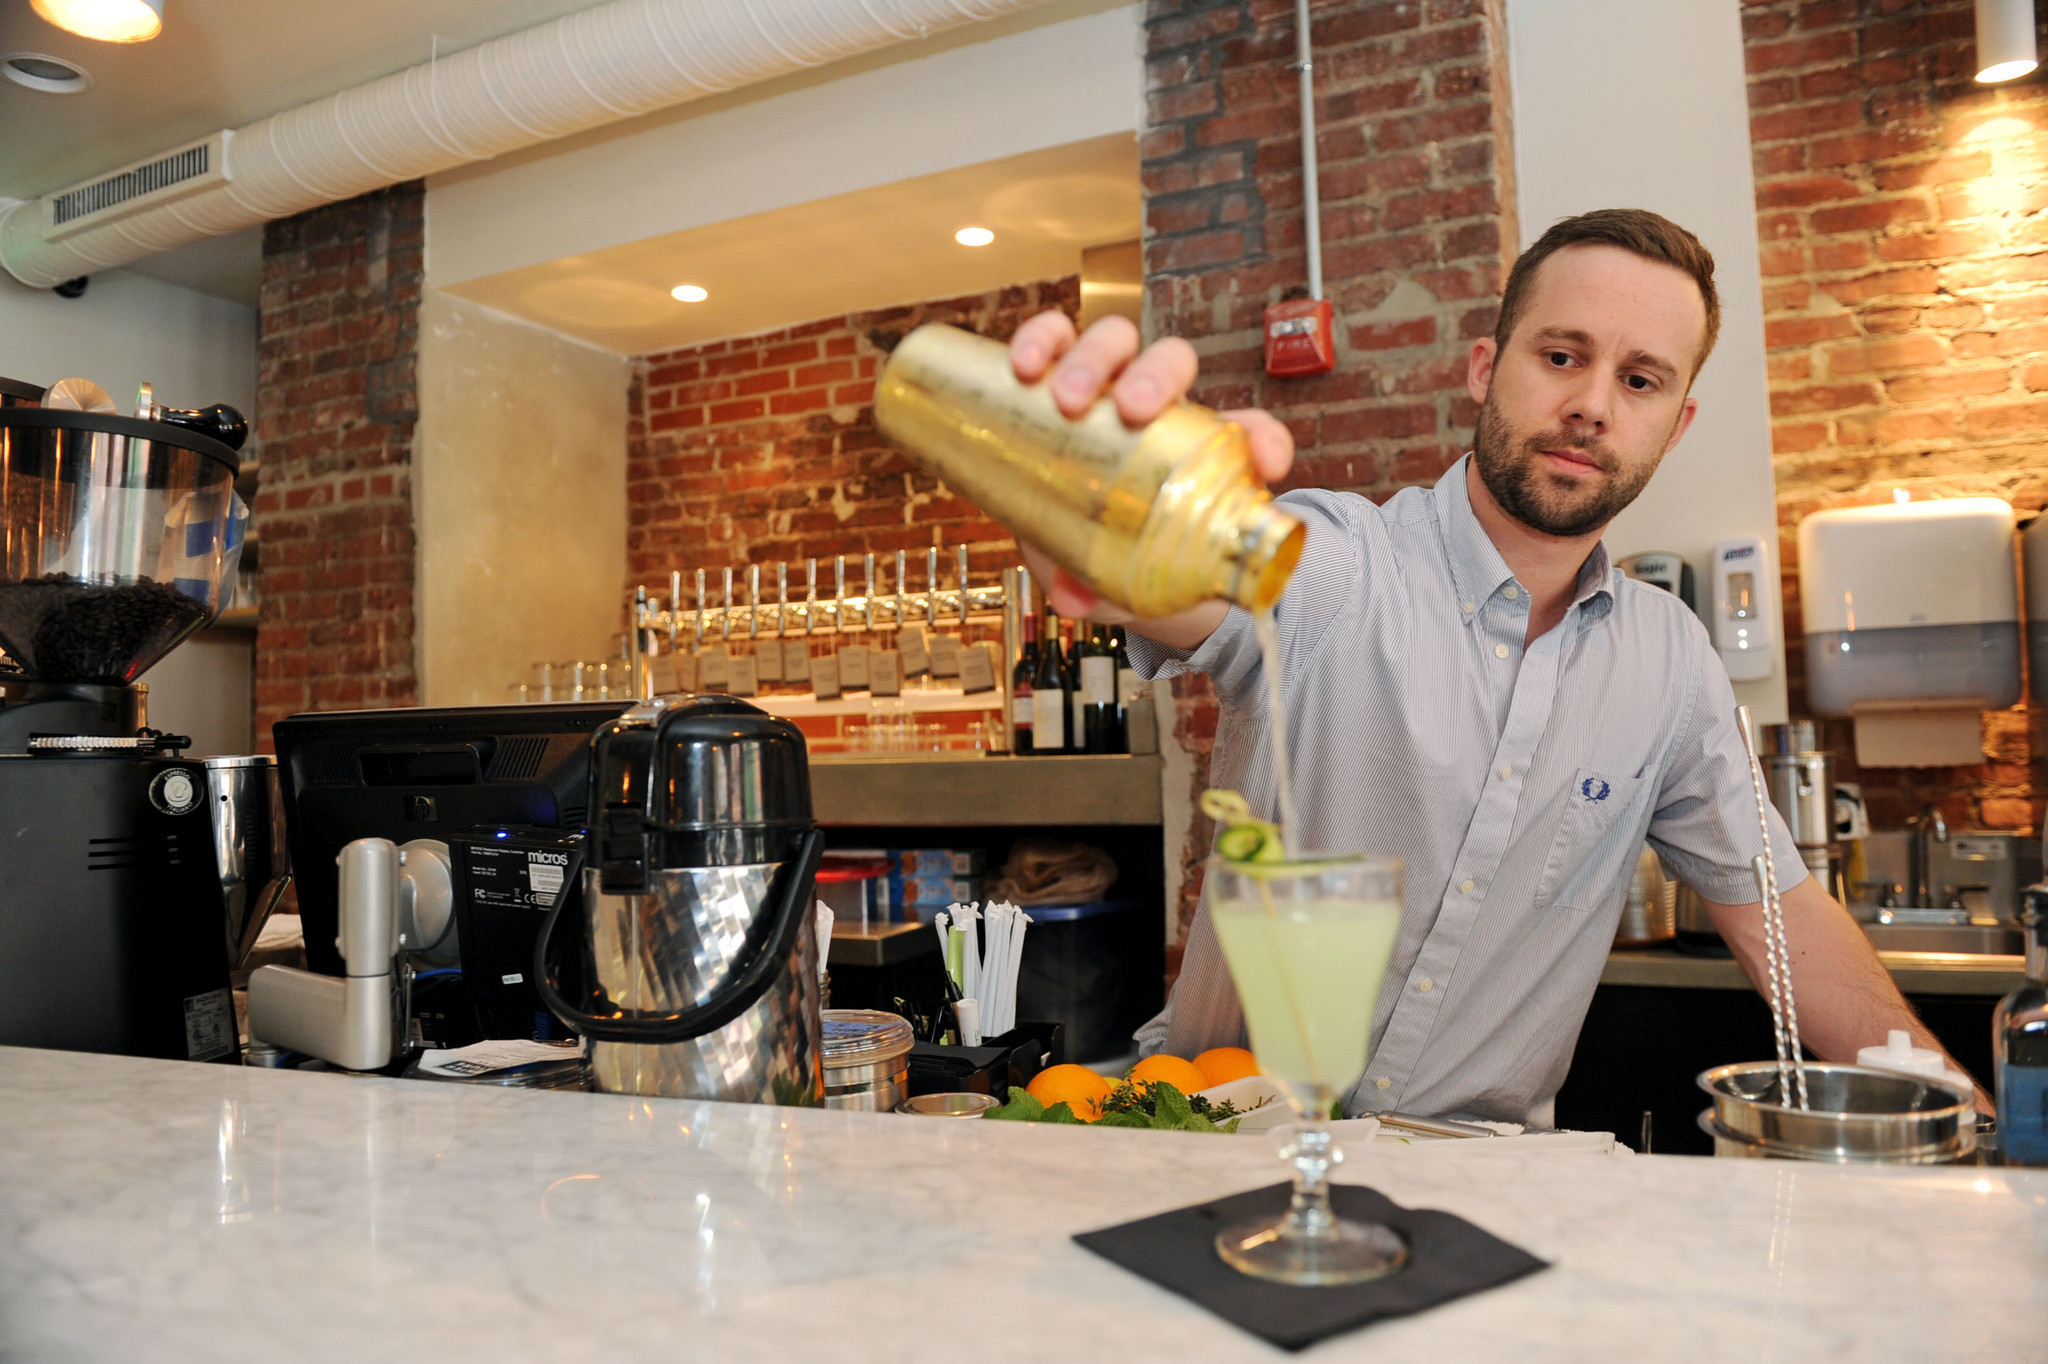 Dooby's adds versatility to city's coffee culture ...